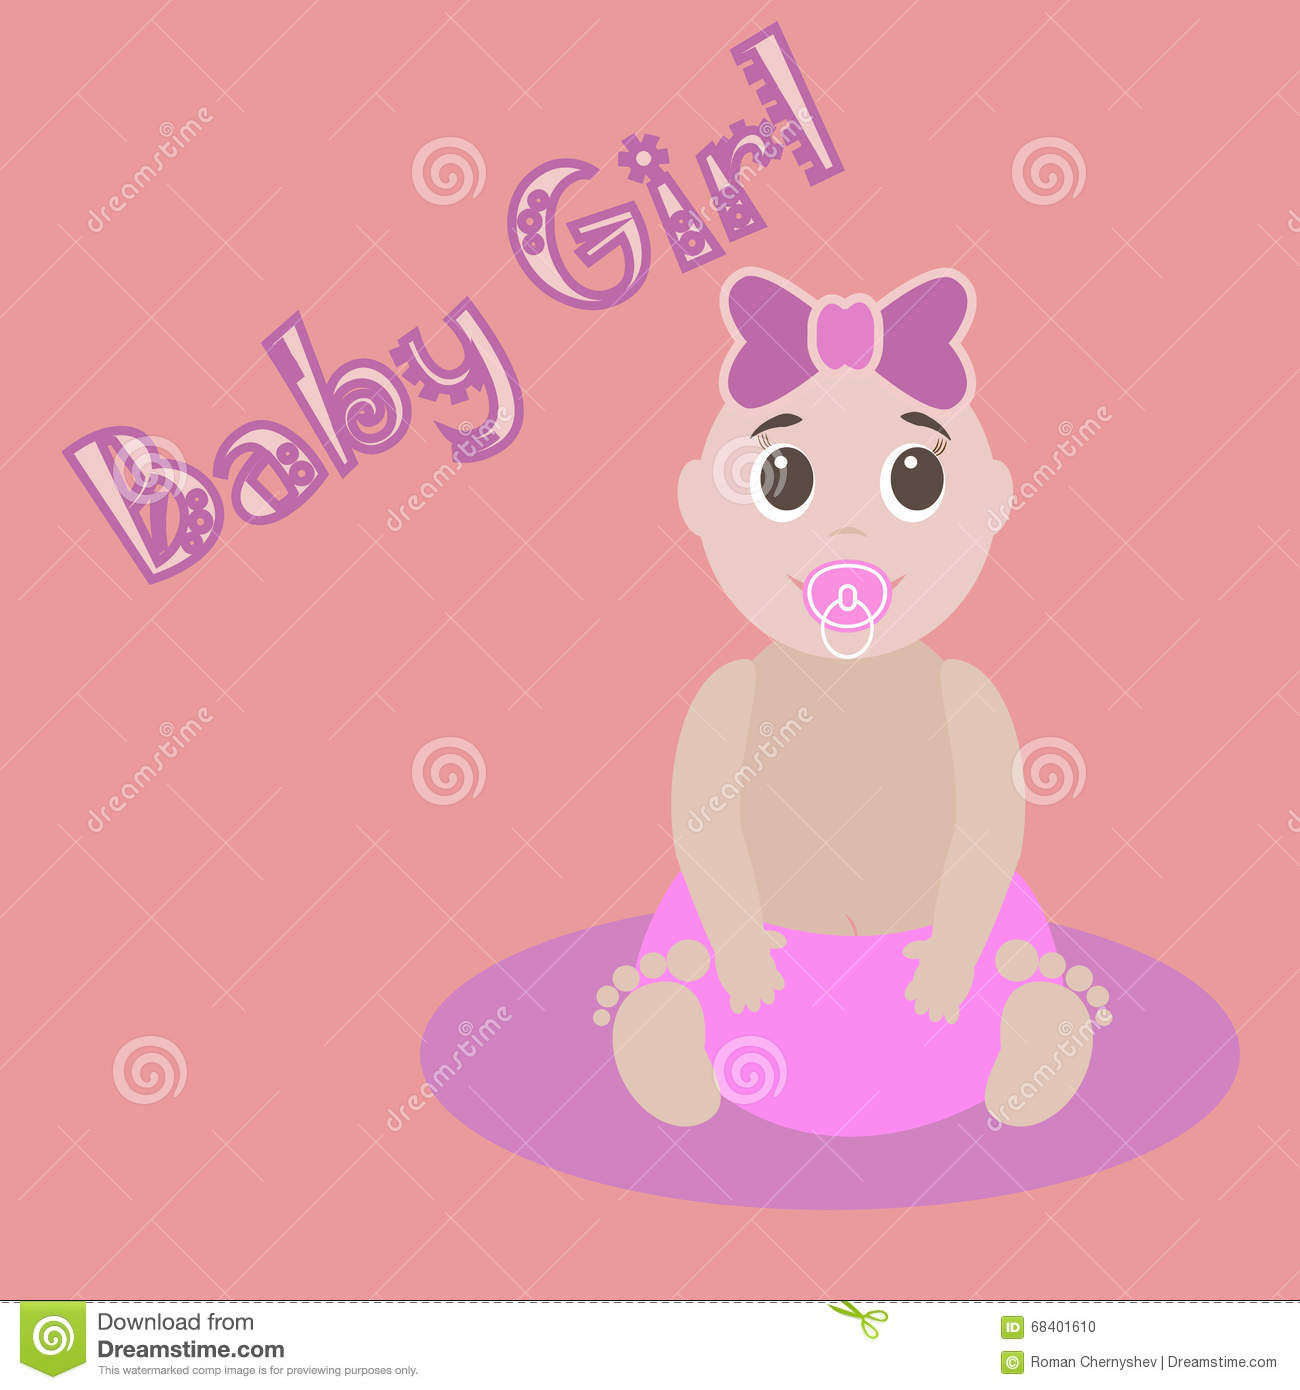 Cute Graphic For Baby Girl Baby Girlnewborn Lovely Greeting Card